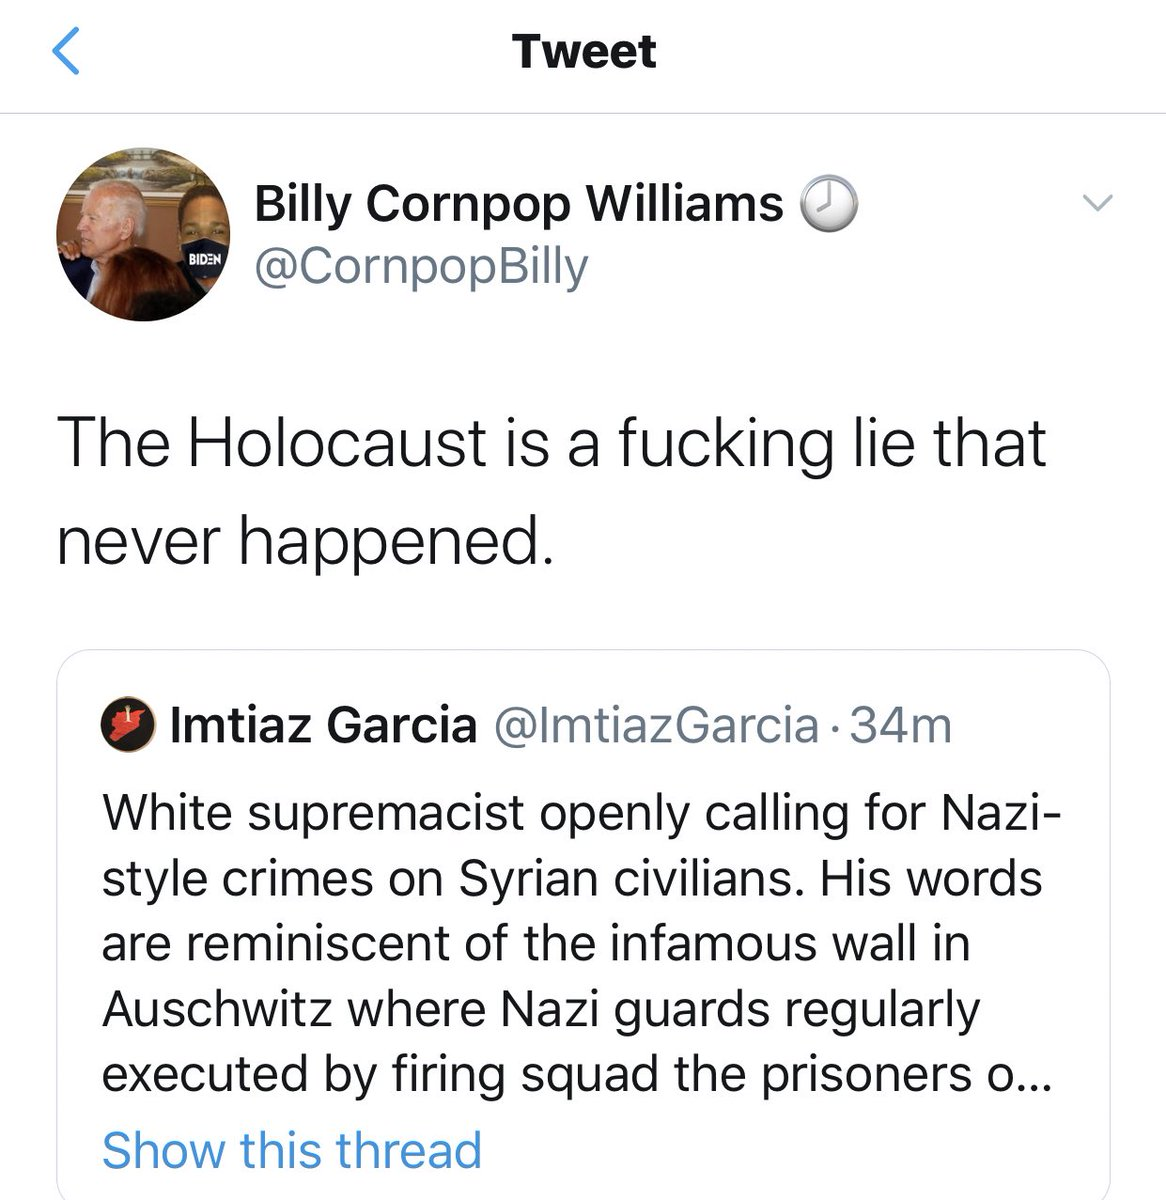 More ... according to Billy the Holocaust is a lie that never happened. #fascist #antifa